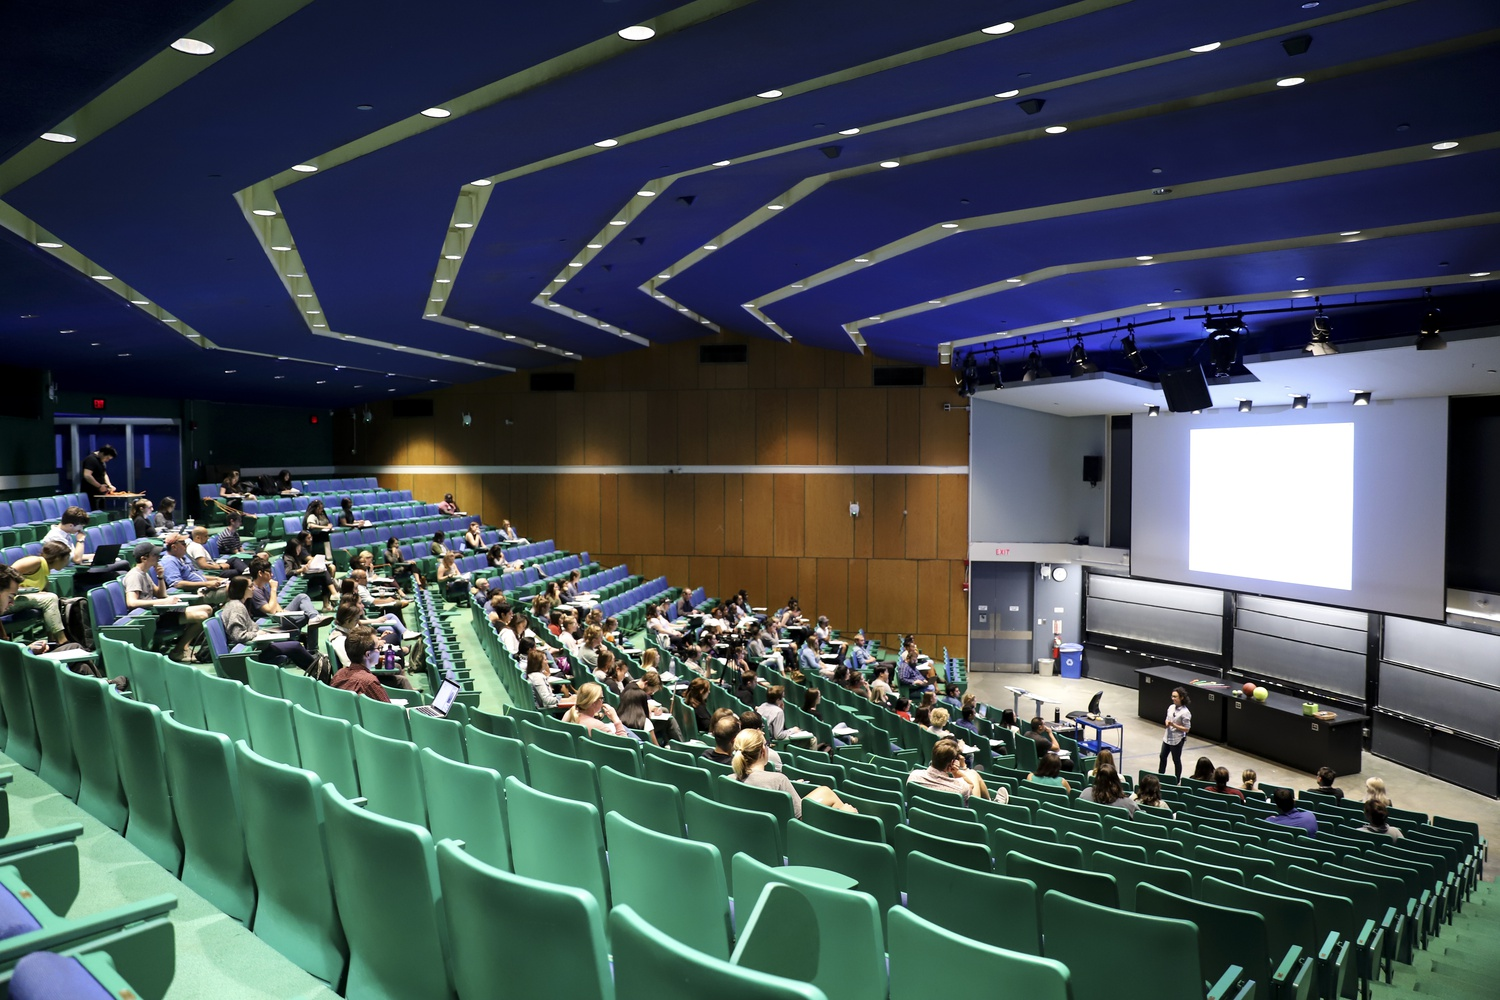 A Harvard Extension School Physics class meetings in the Science Center in September.